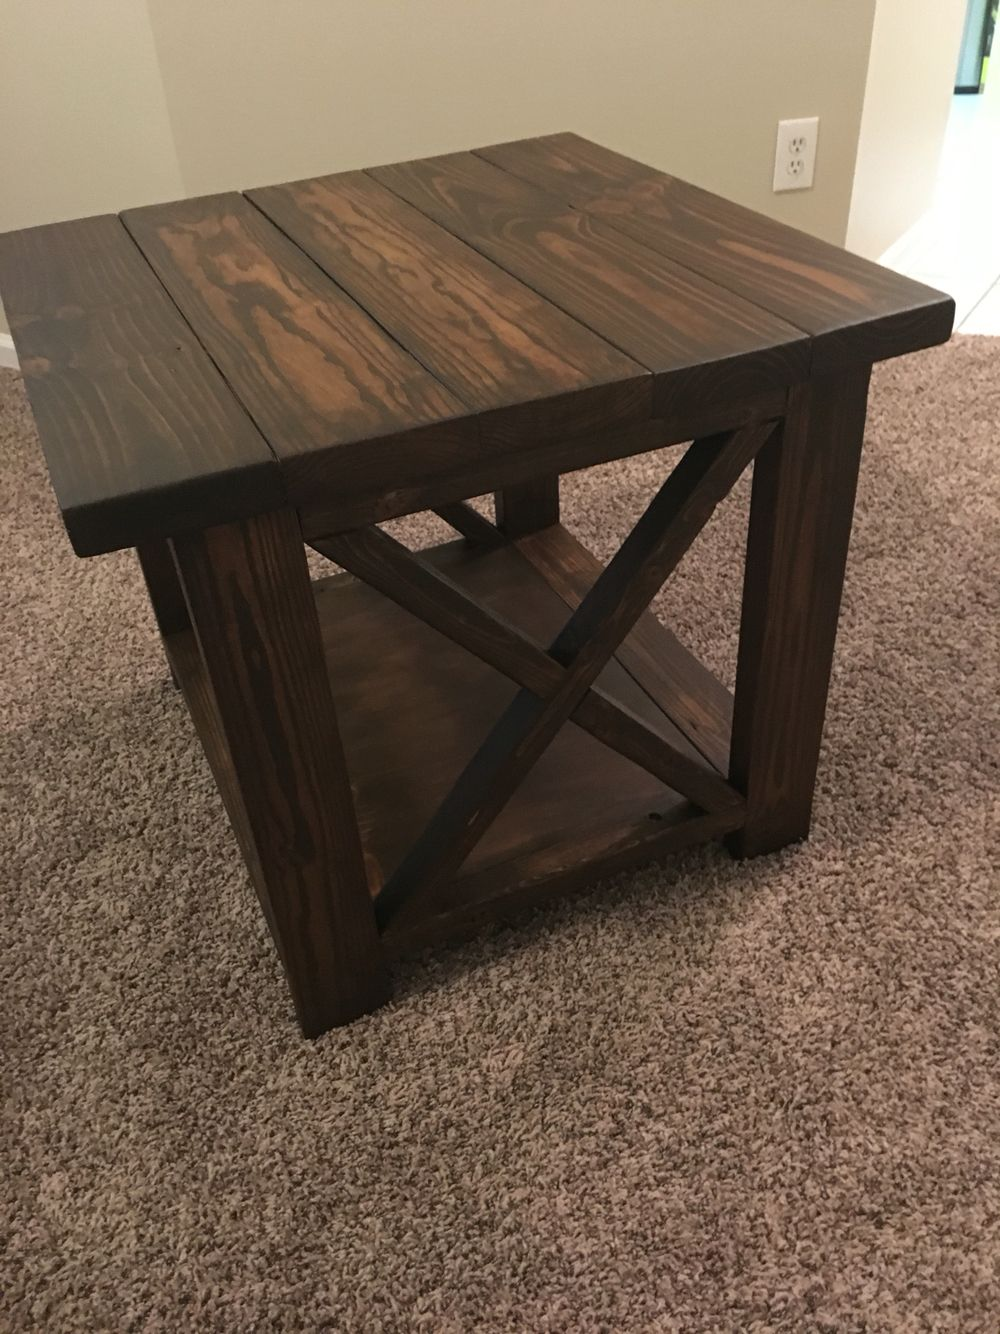 Adam did an amazing job on our end table!!! Diy end